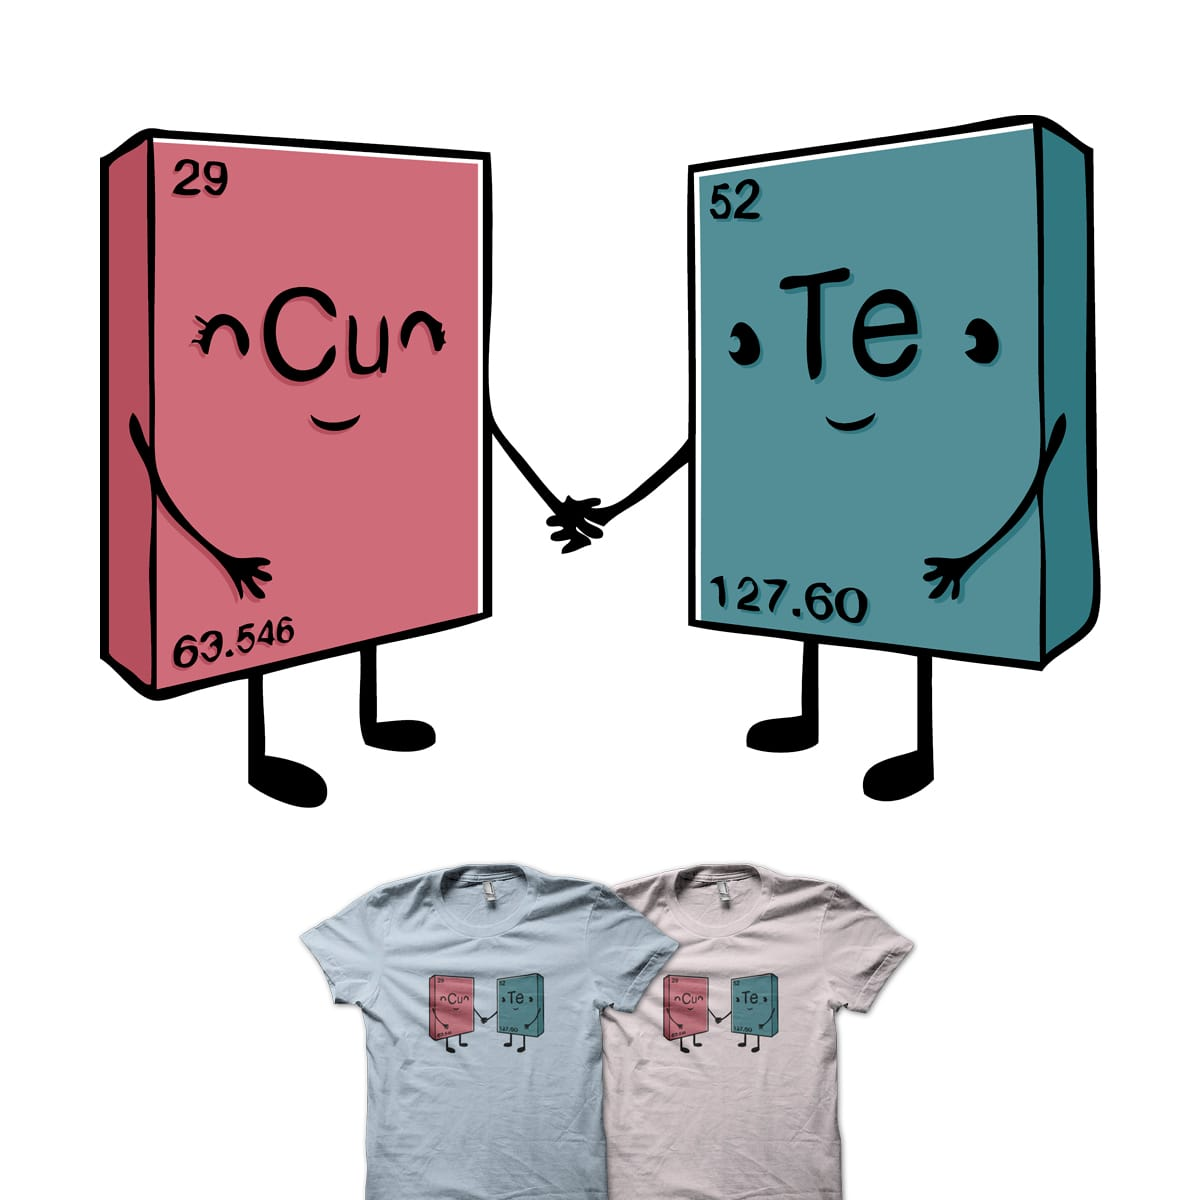 CuTe by andremacedo on Threadless